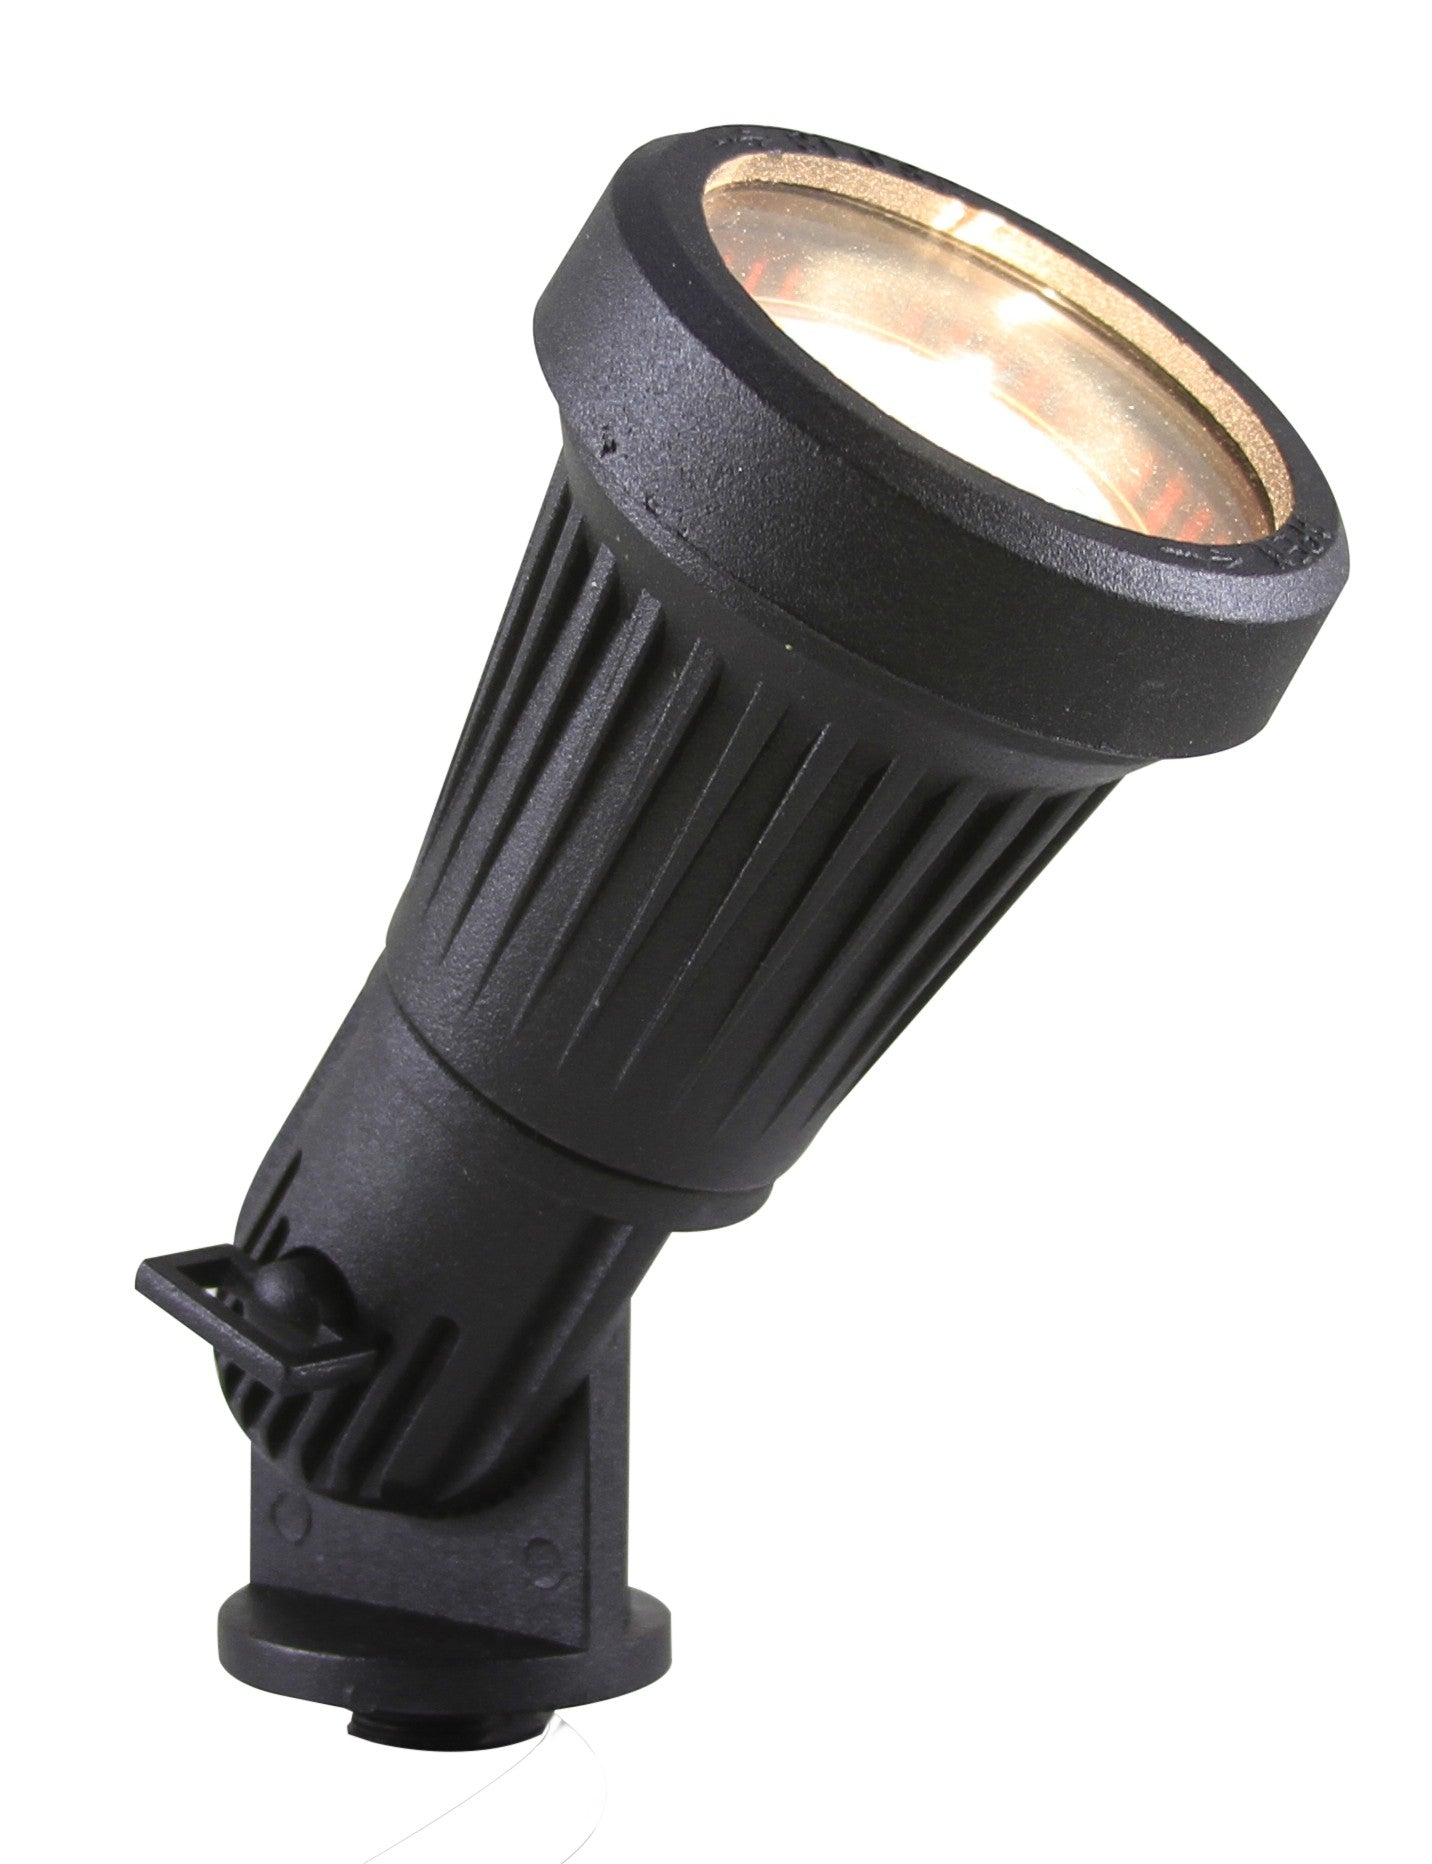 Westgate 12V 5W LED Aluminum Textured Directional Light, Black or Bronze Finish